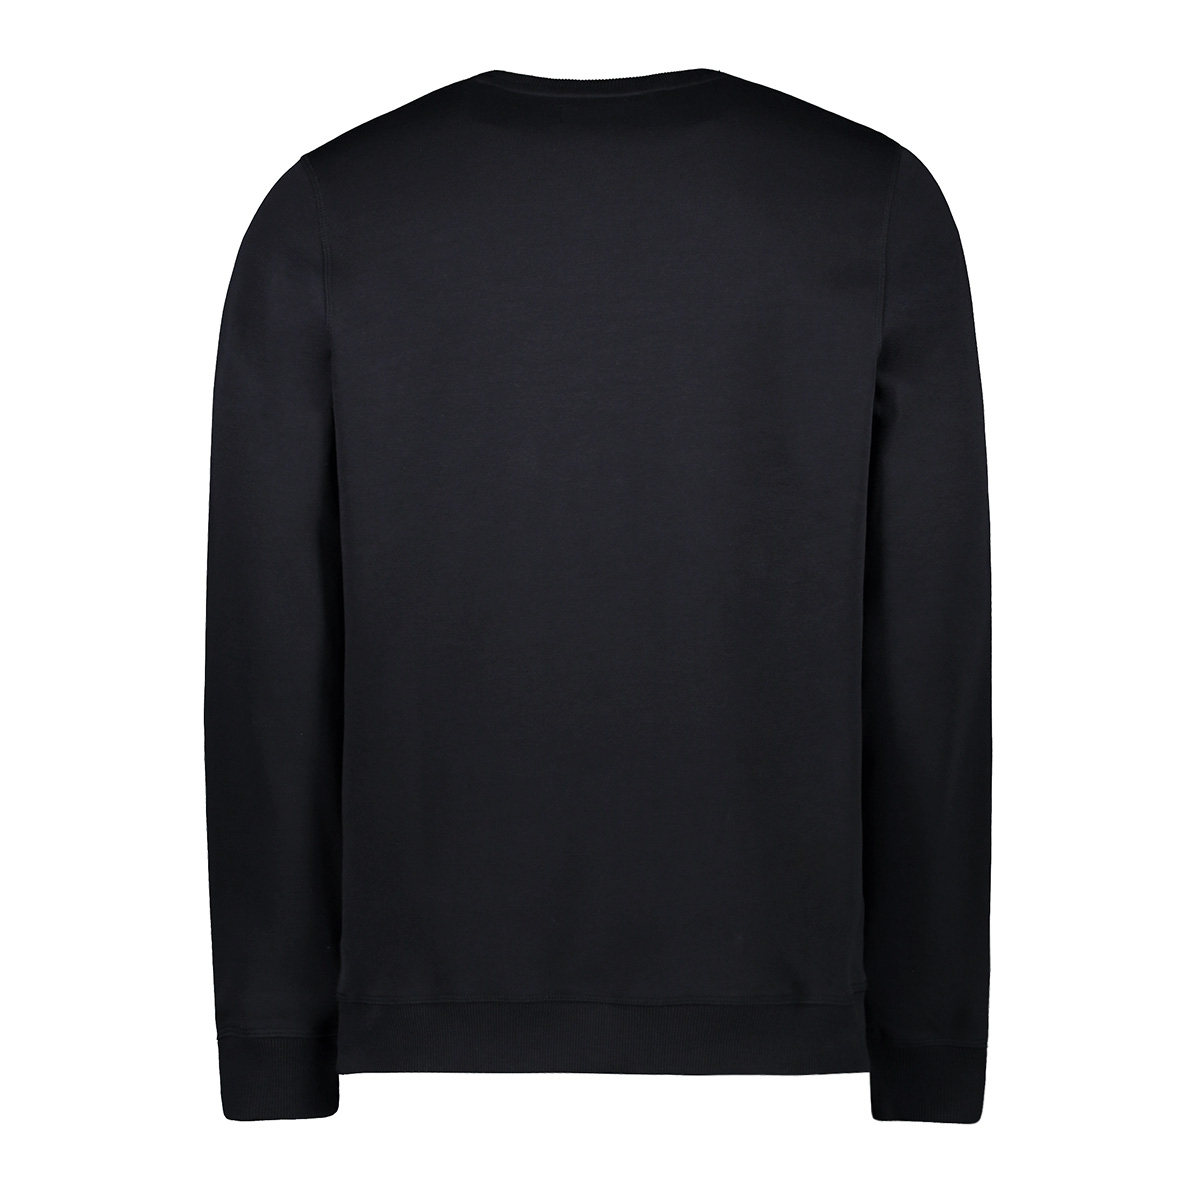 fenners crew neck 45060 cars sweater 01 black